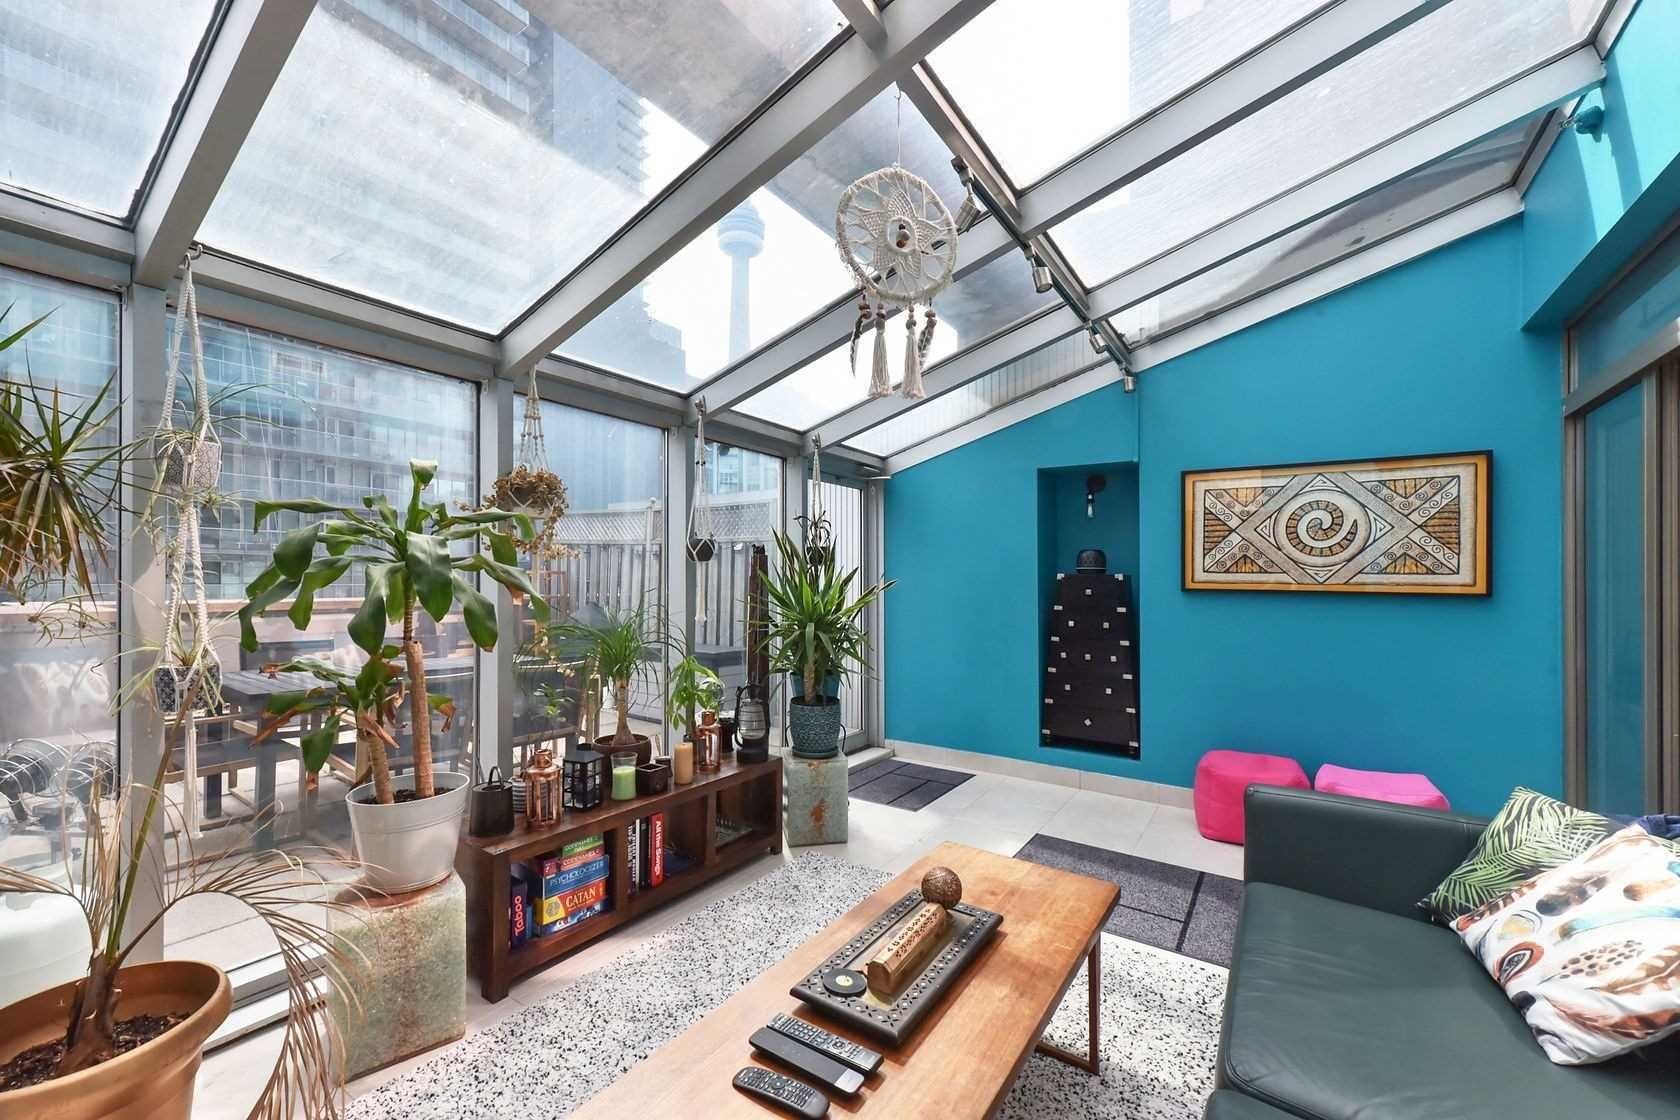 393 King St W, unit 403 for sale in Toronto - image #1